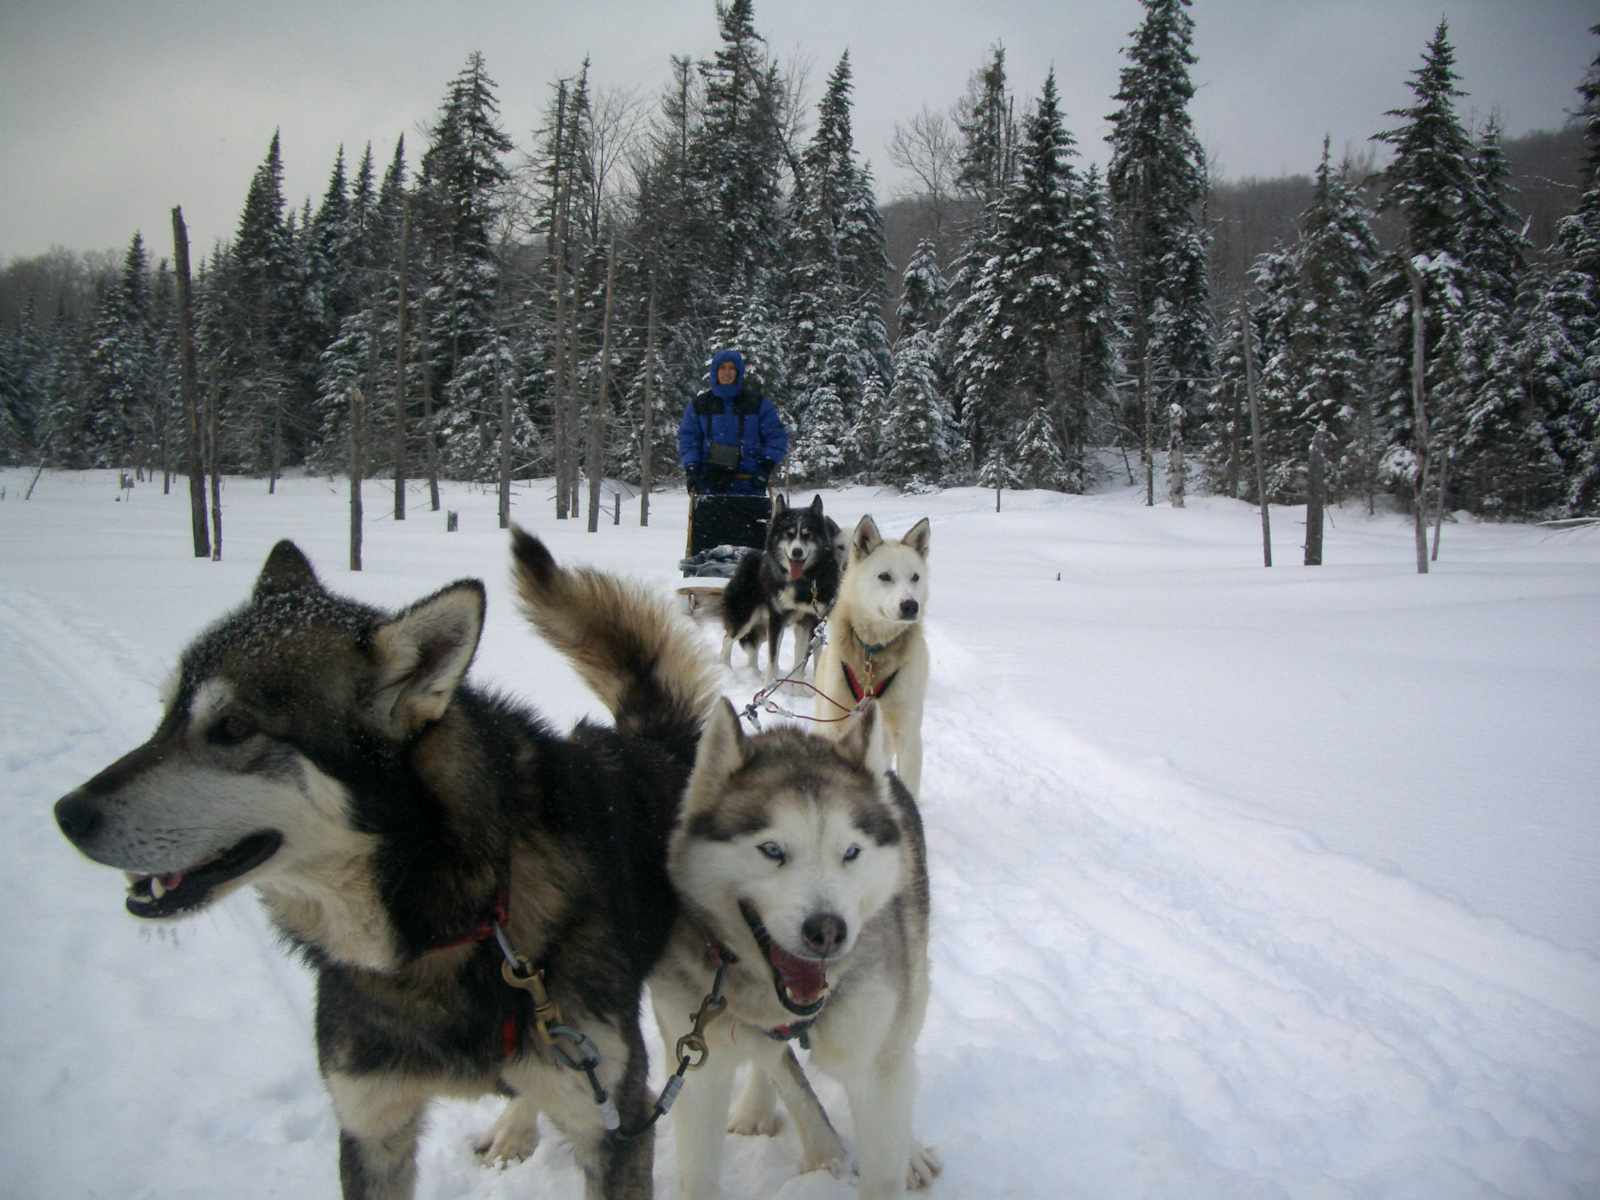 pack of Canadian Inuit dogs on sled in snow pulling man in snow gear